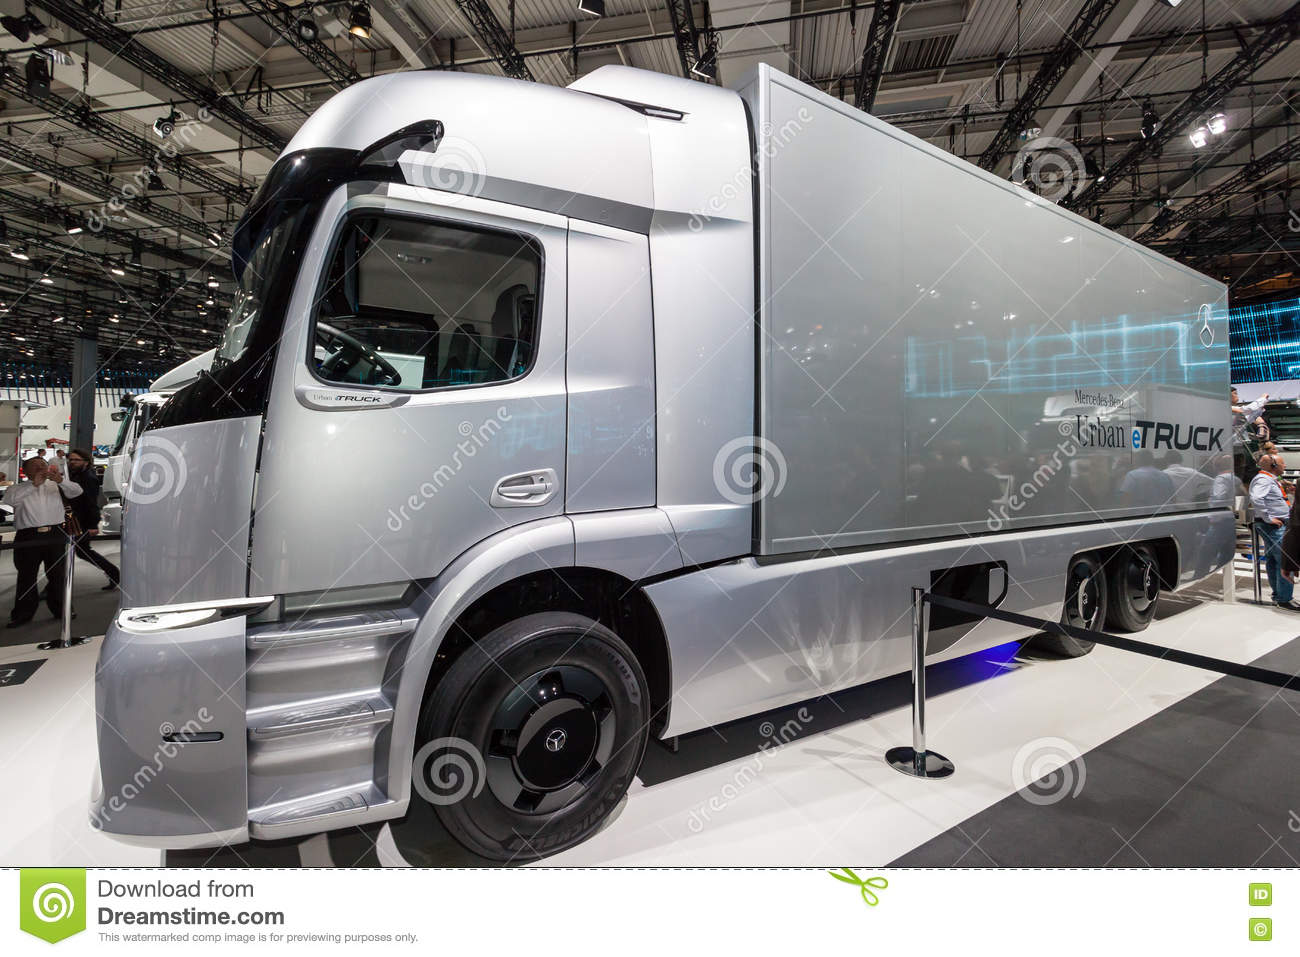 23e27aed85 Mercedes Benz eTRUCK editorial stock image. Image of fair - 77973949